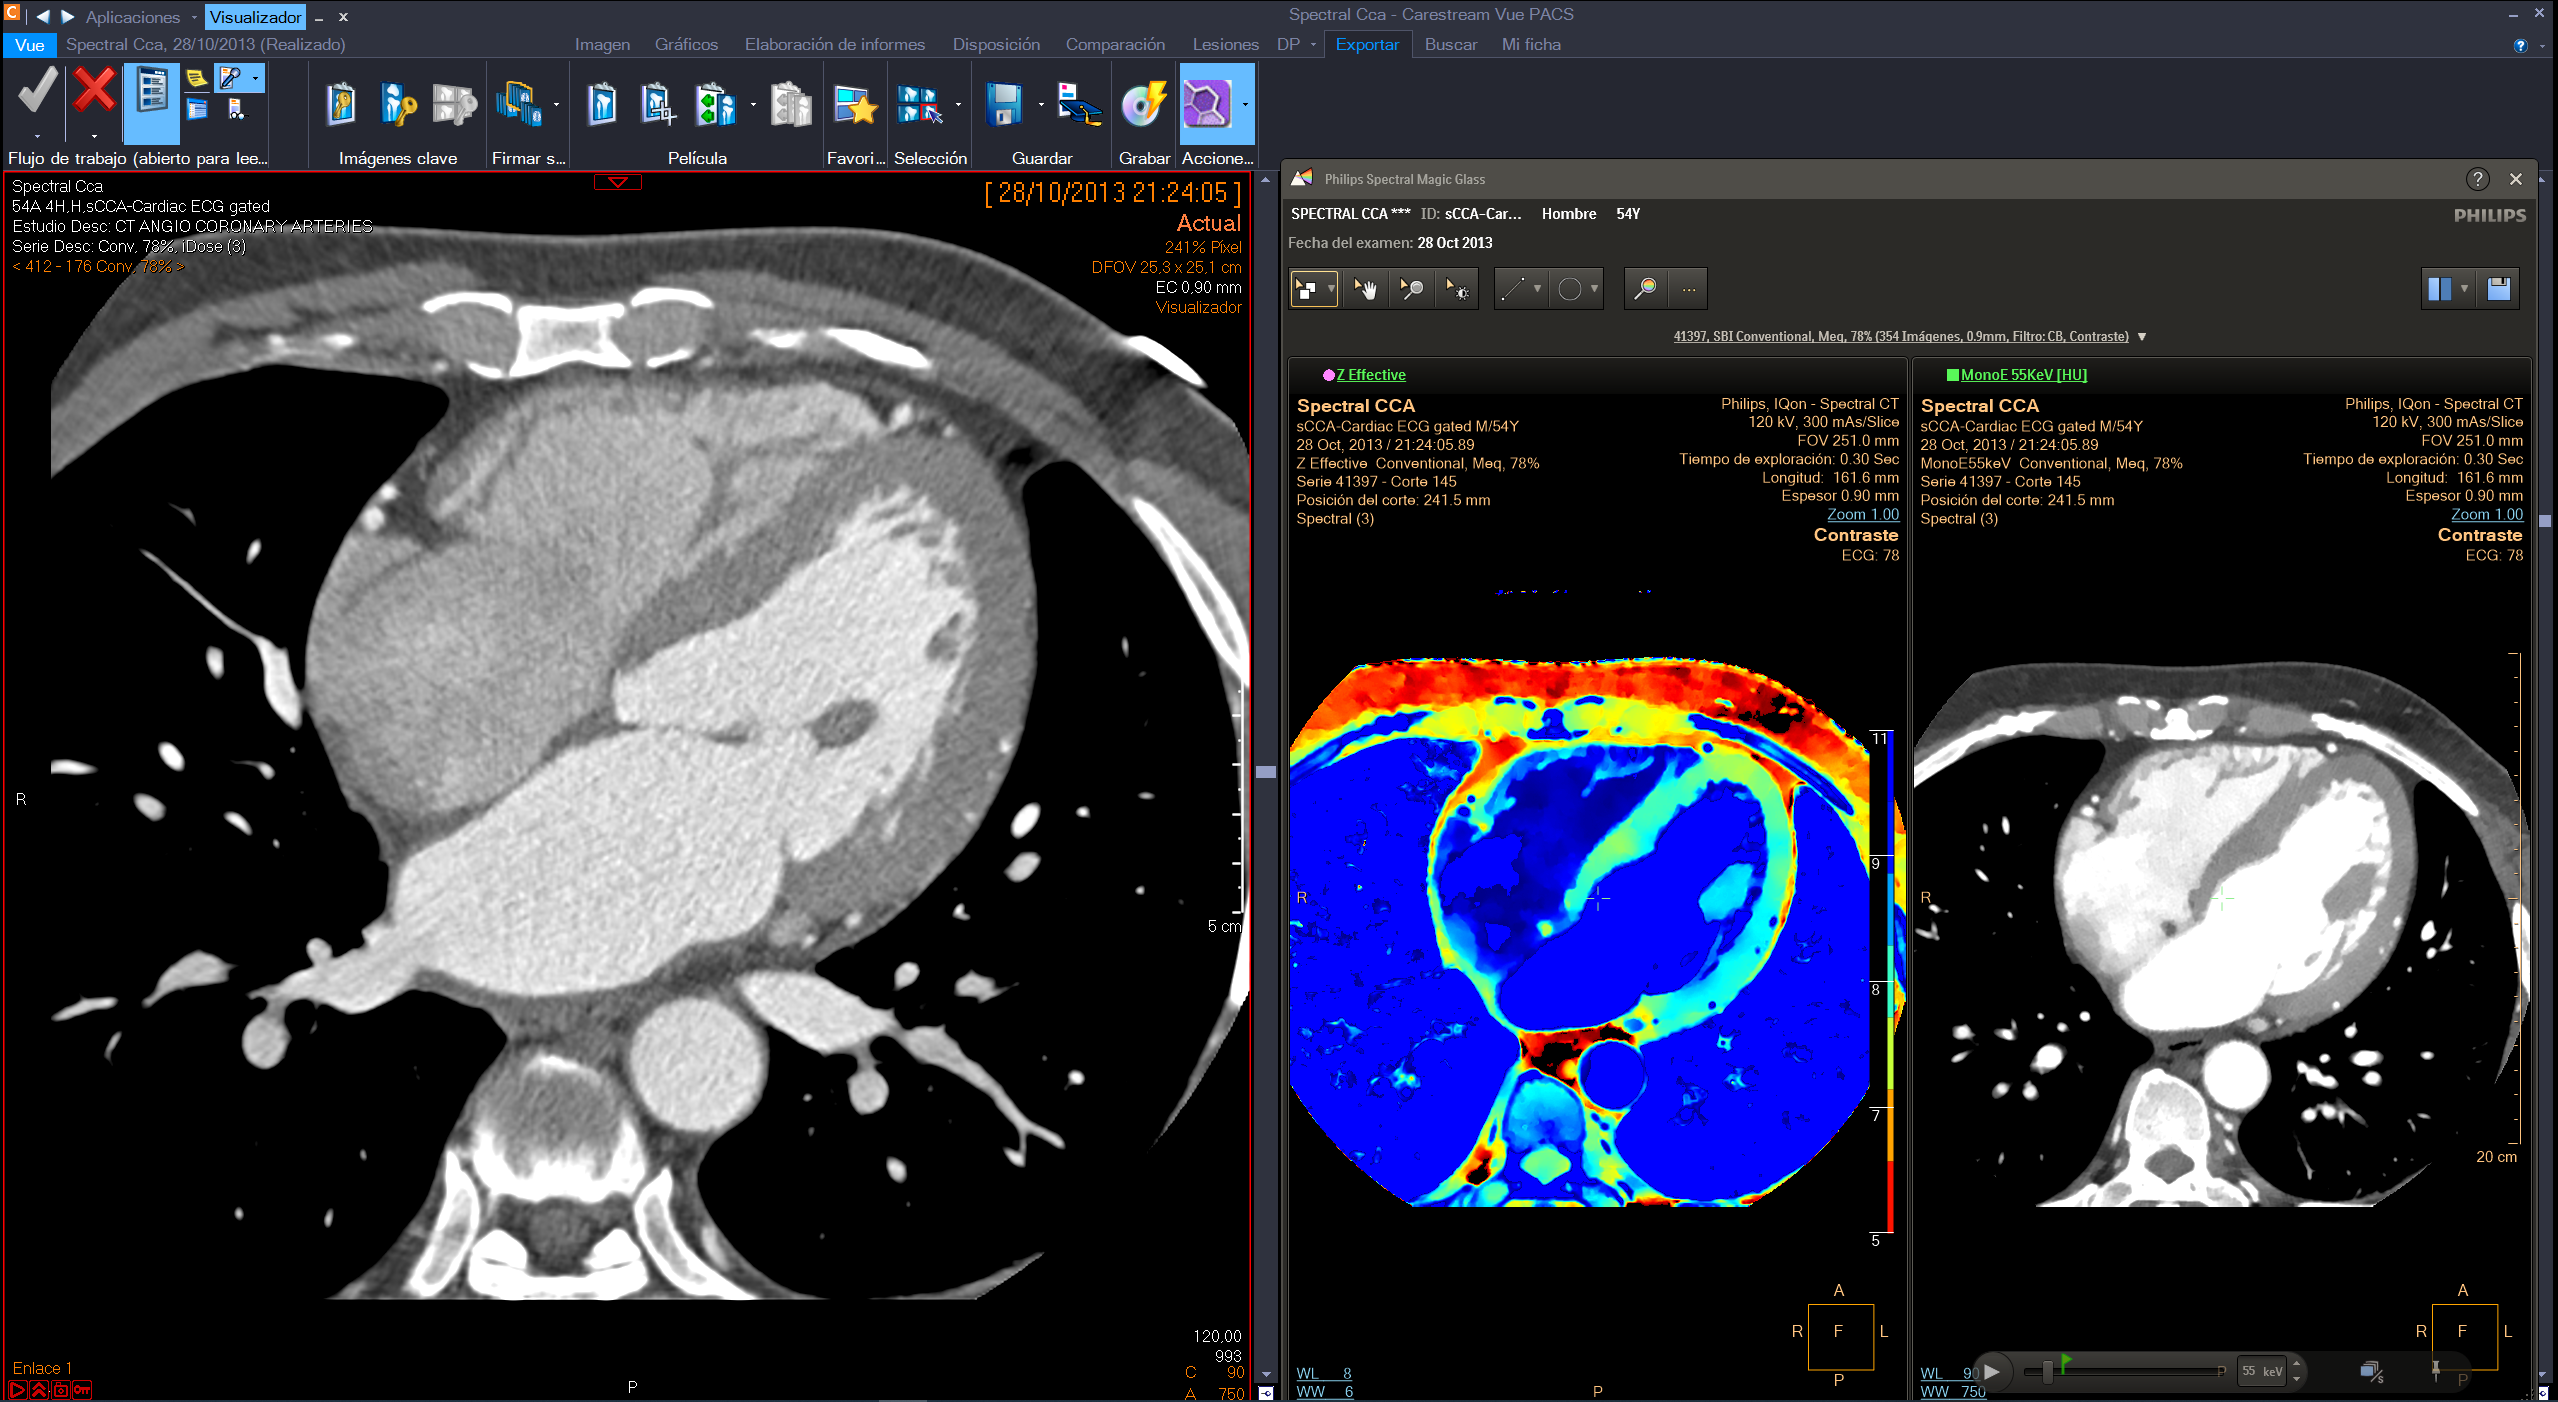 Philips integrated the IntelliSpace Portal advanced applications with the Philips diagnostic viewer (from Carestream) creating a combined radiology diagnostic workspace.